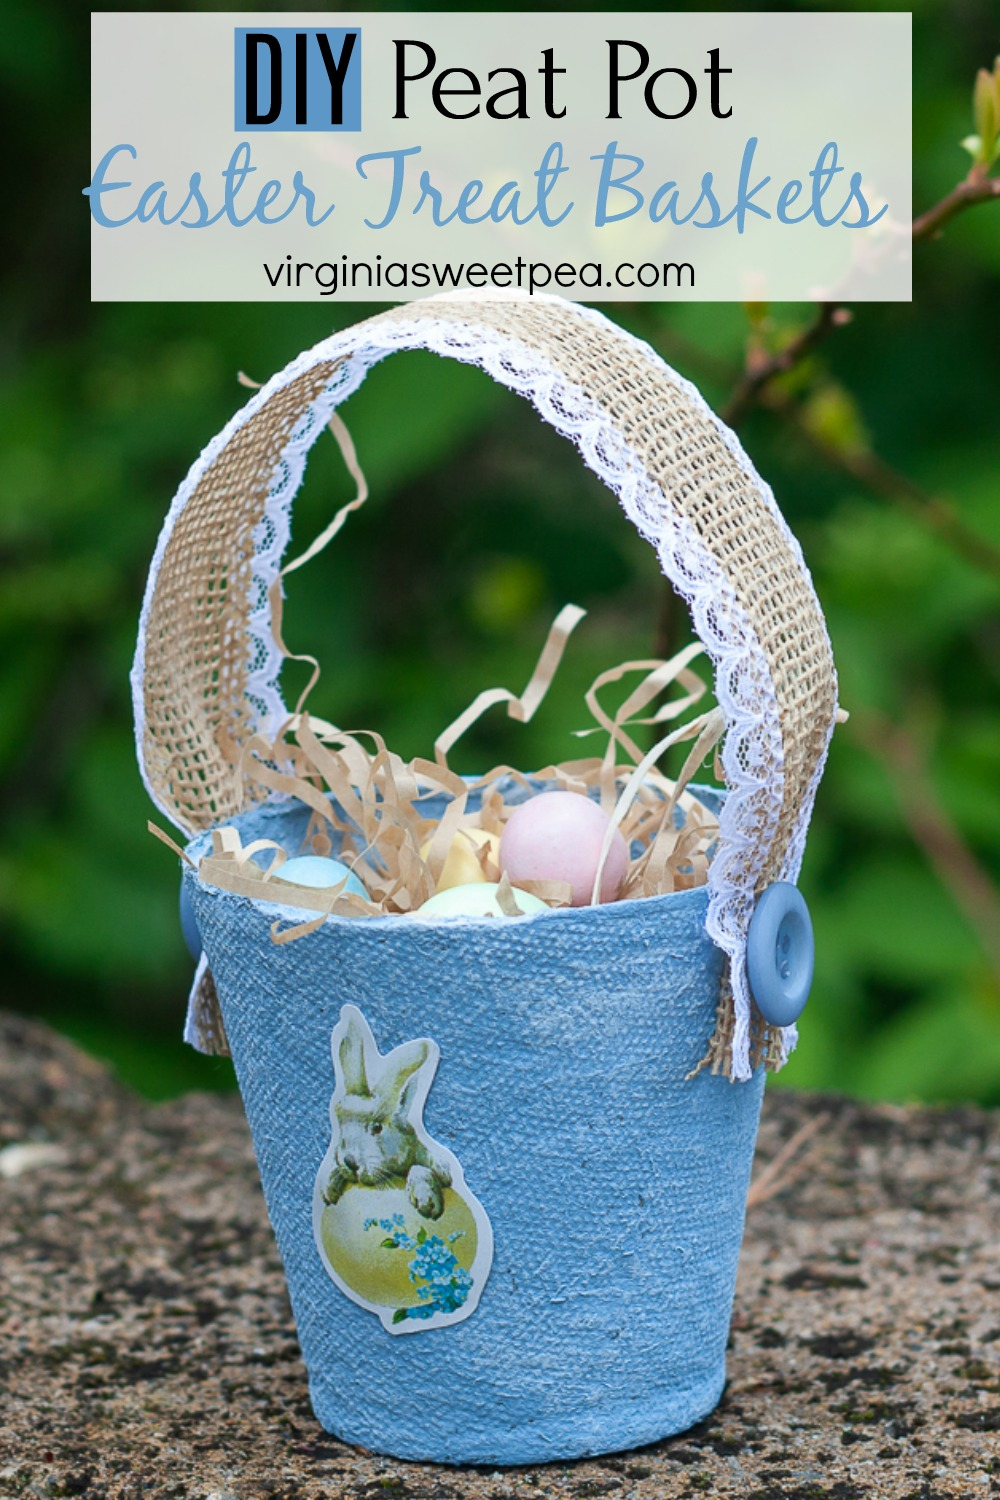 DIY Peat Pot Easter Treat Basket - Learn how to make these adorable Easter treat baskets using peat pots, ribbon, and buttons. #easterbaskets #eastercraft #easteractivity #peatpotcraft #peatpotbasket via @spaula